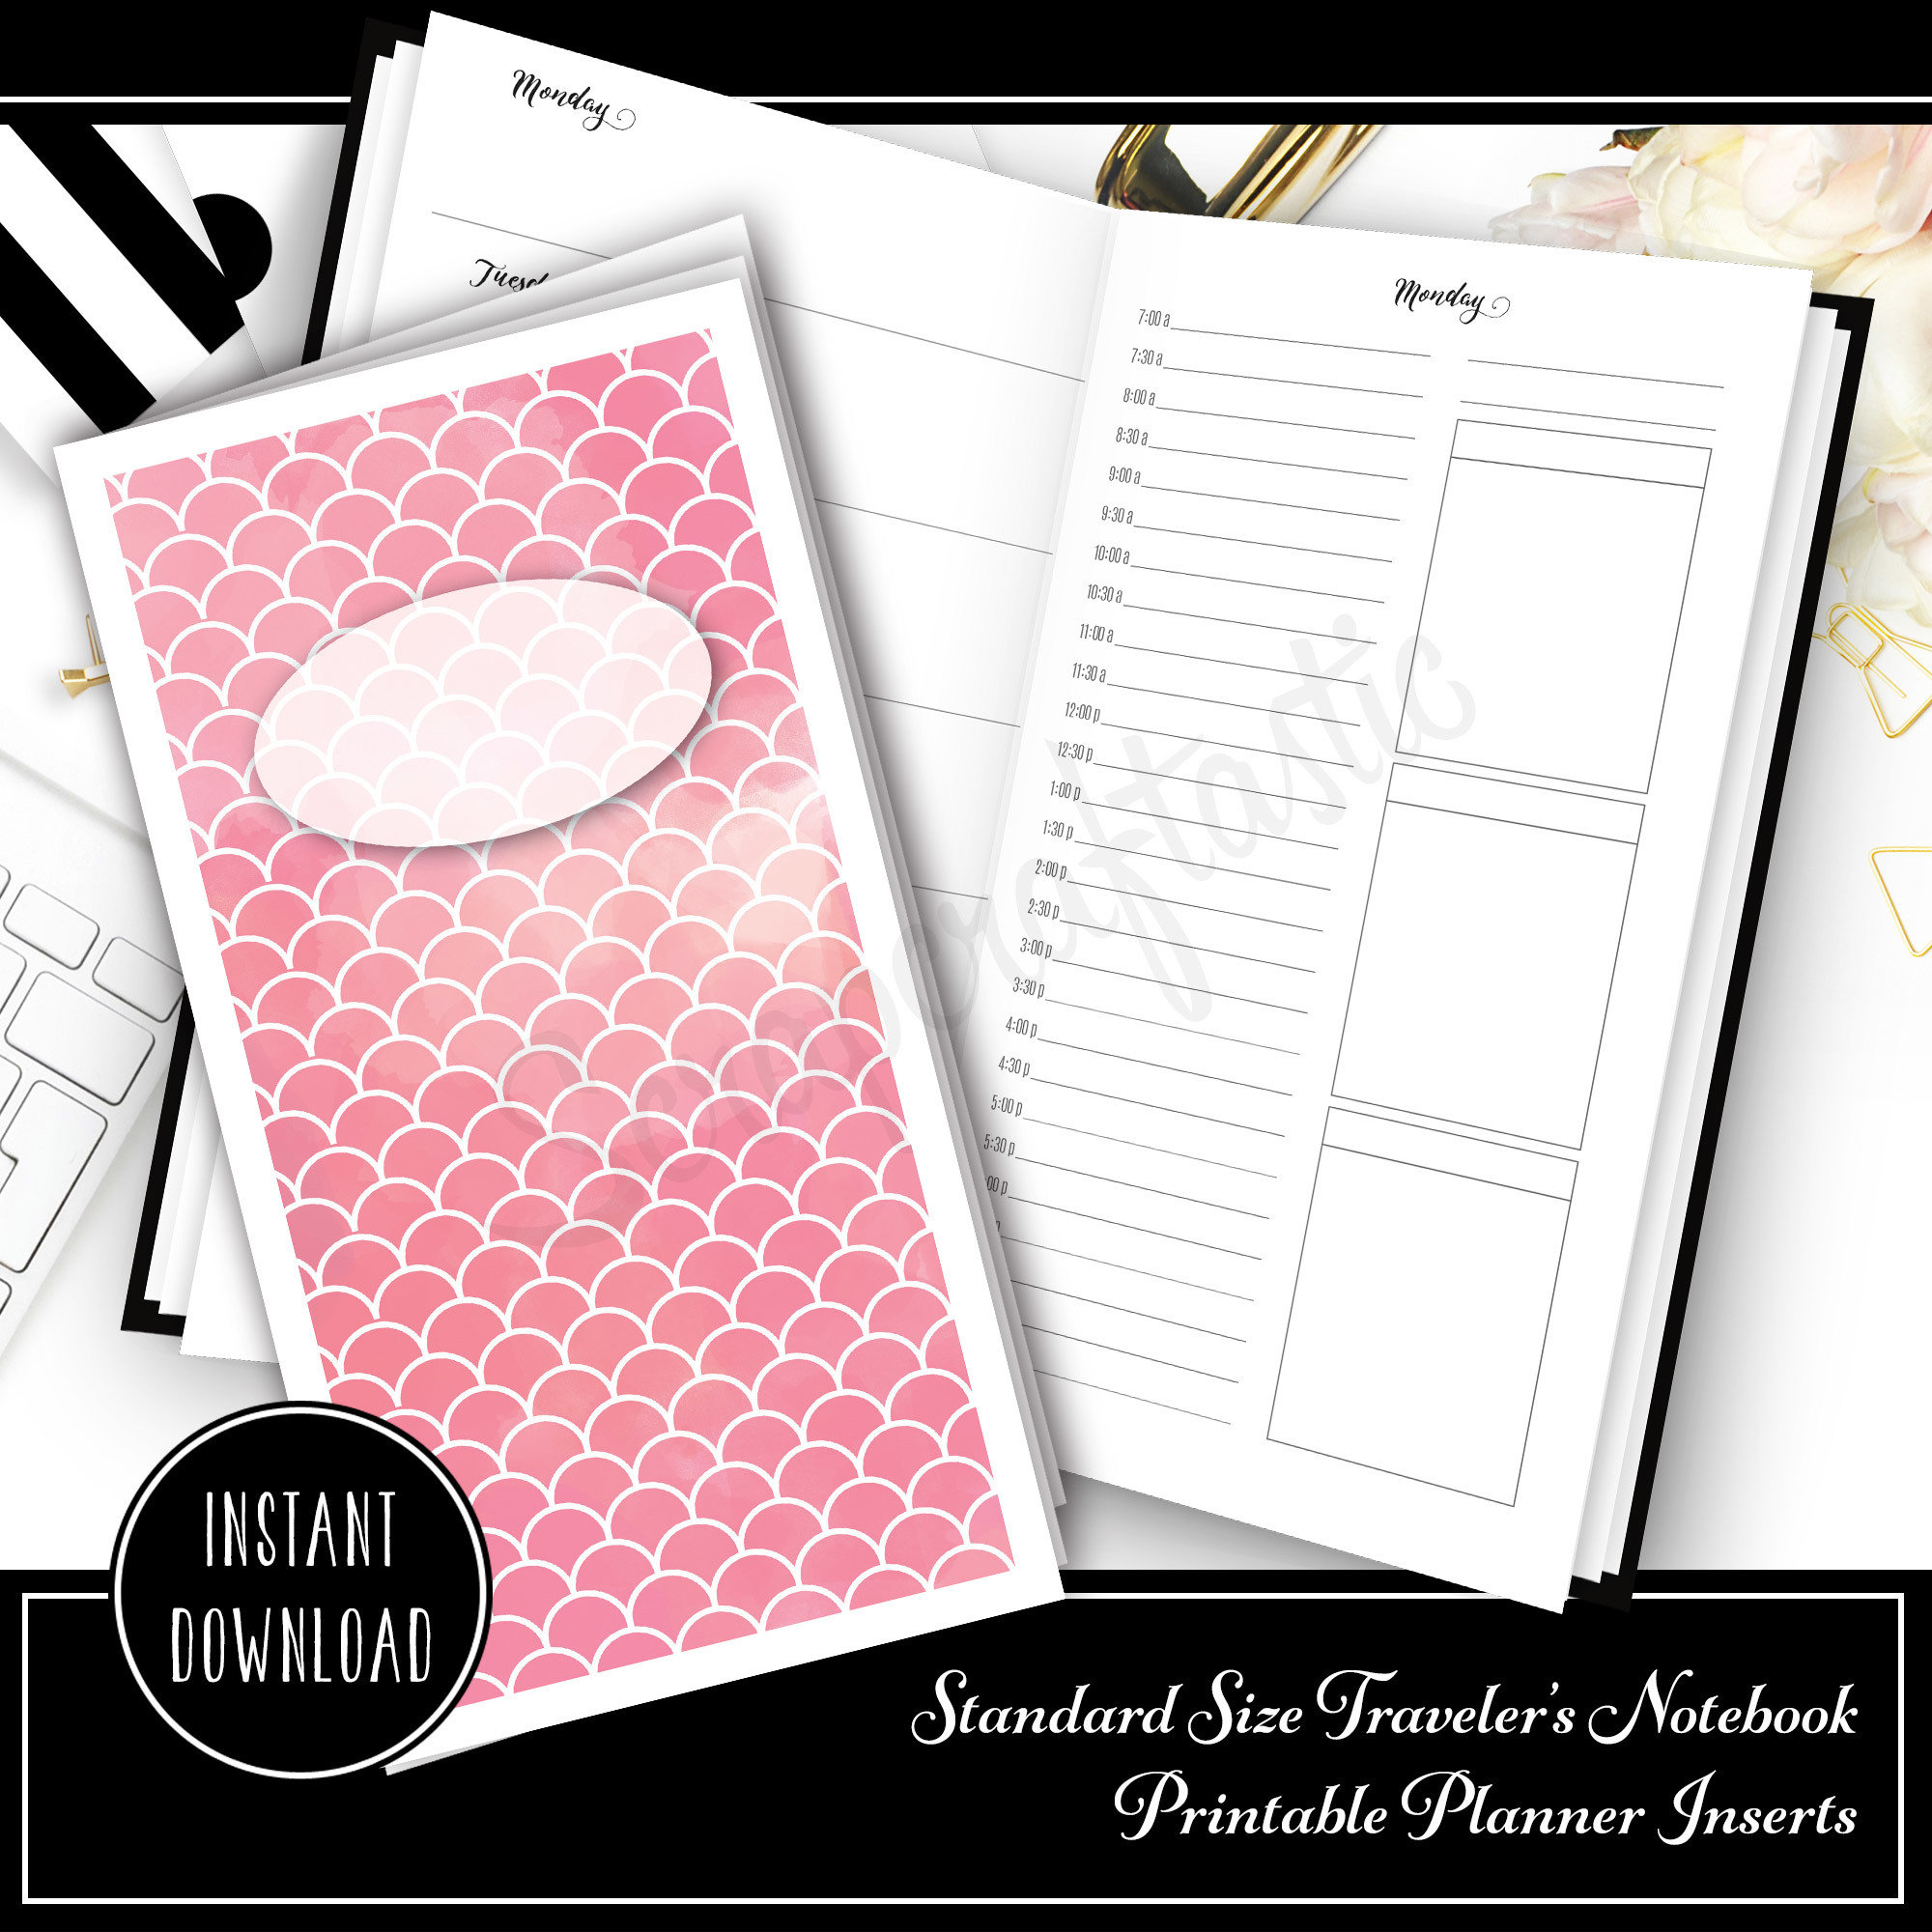 Full Month Notebook: Daily Standard Size with MO2P, WO1P Horizontal and DO1P Daily Schedule Pages Printable 30003